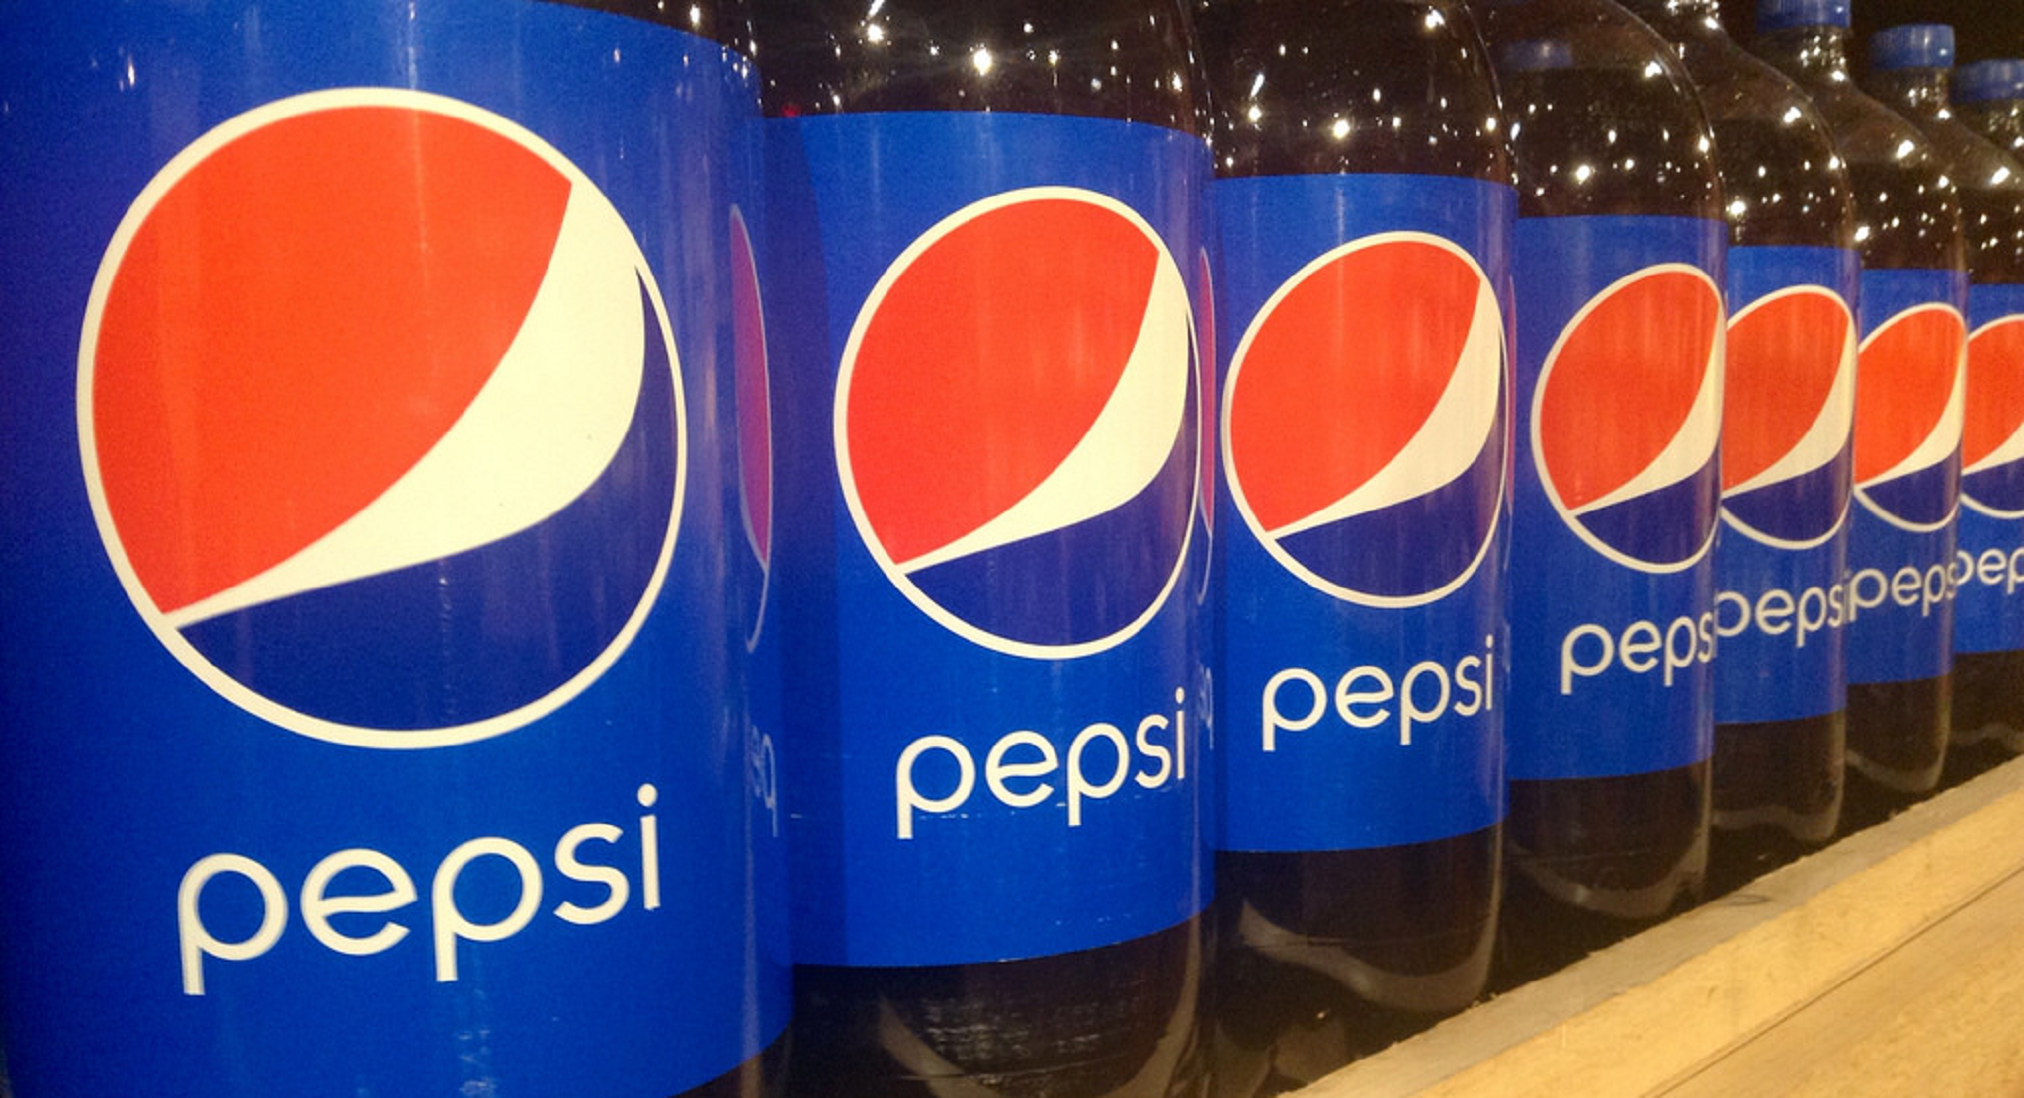 pepsi weakness Pepsi co continues to be the largest multinational producer of both snack foods and beverages in the 10 pepsico, inc swot analysis pepsi corporation (pep.